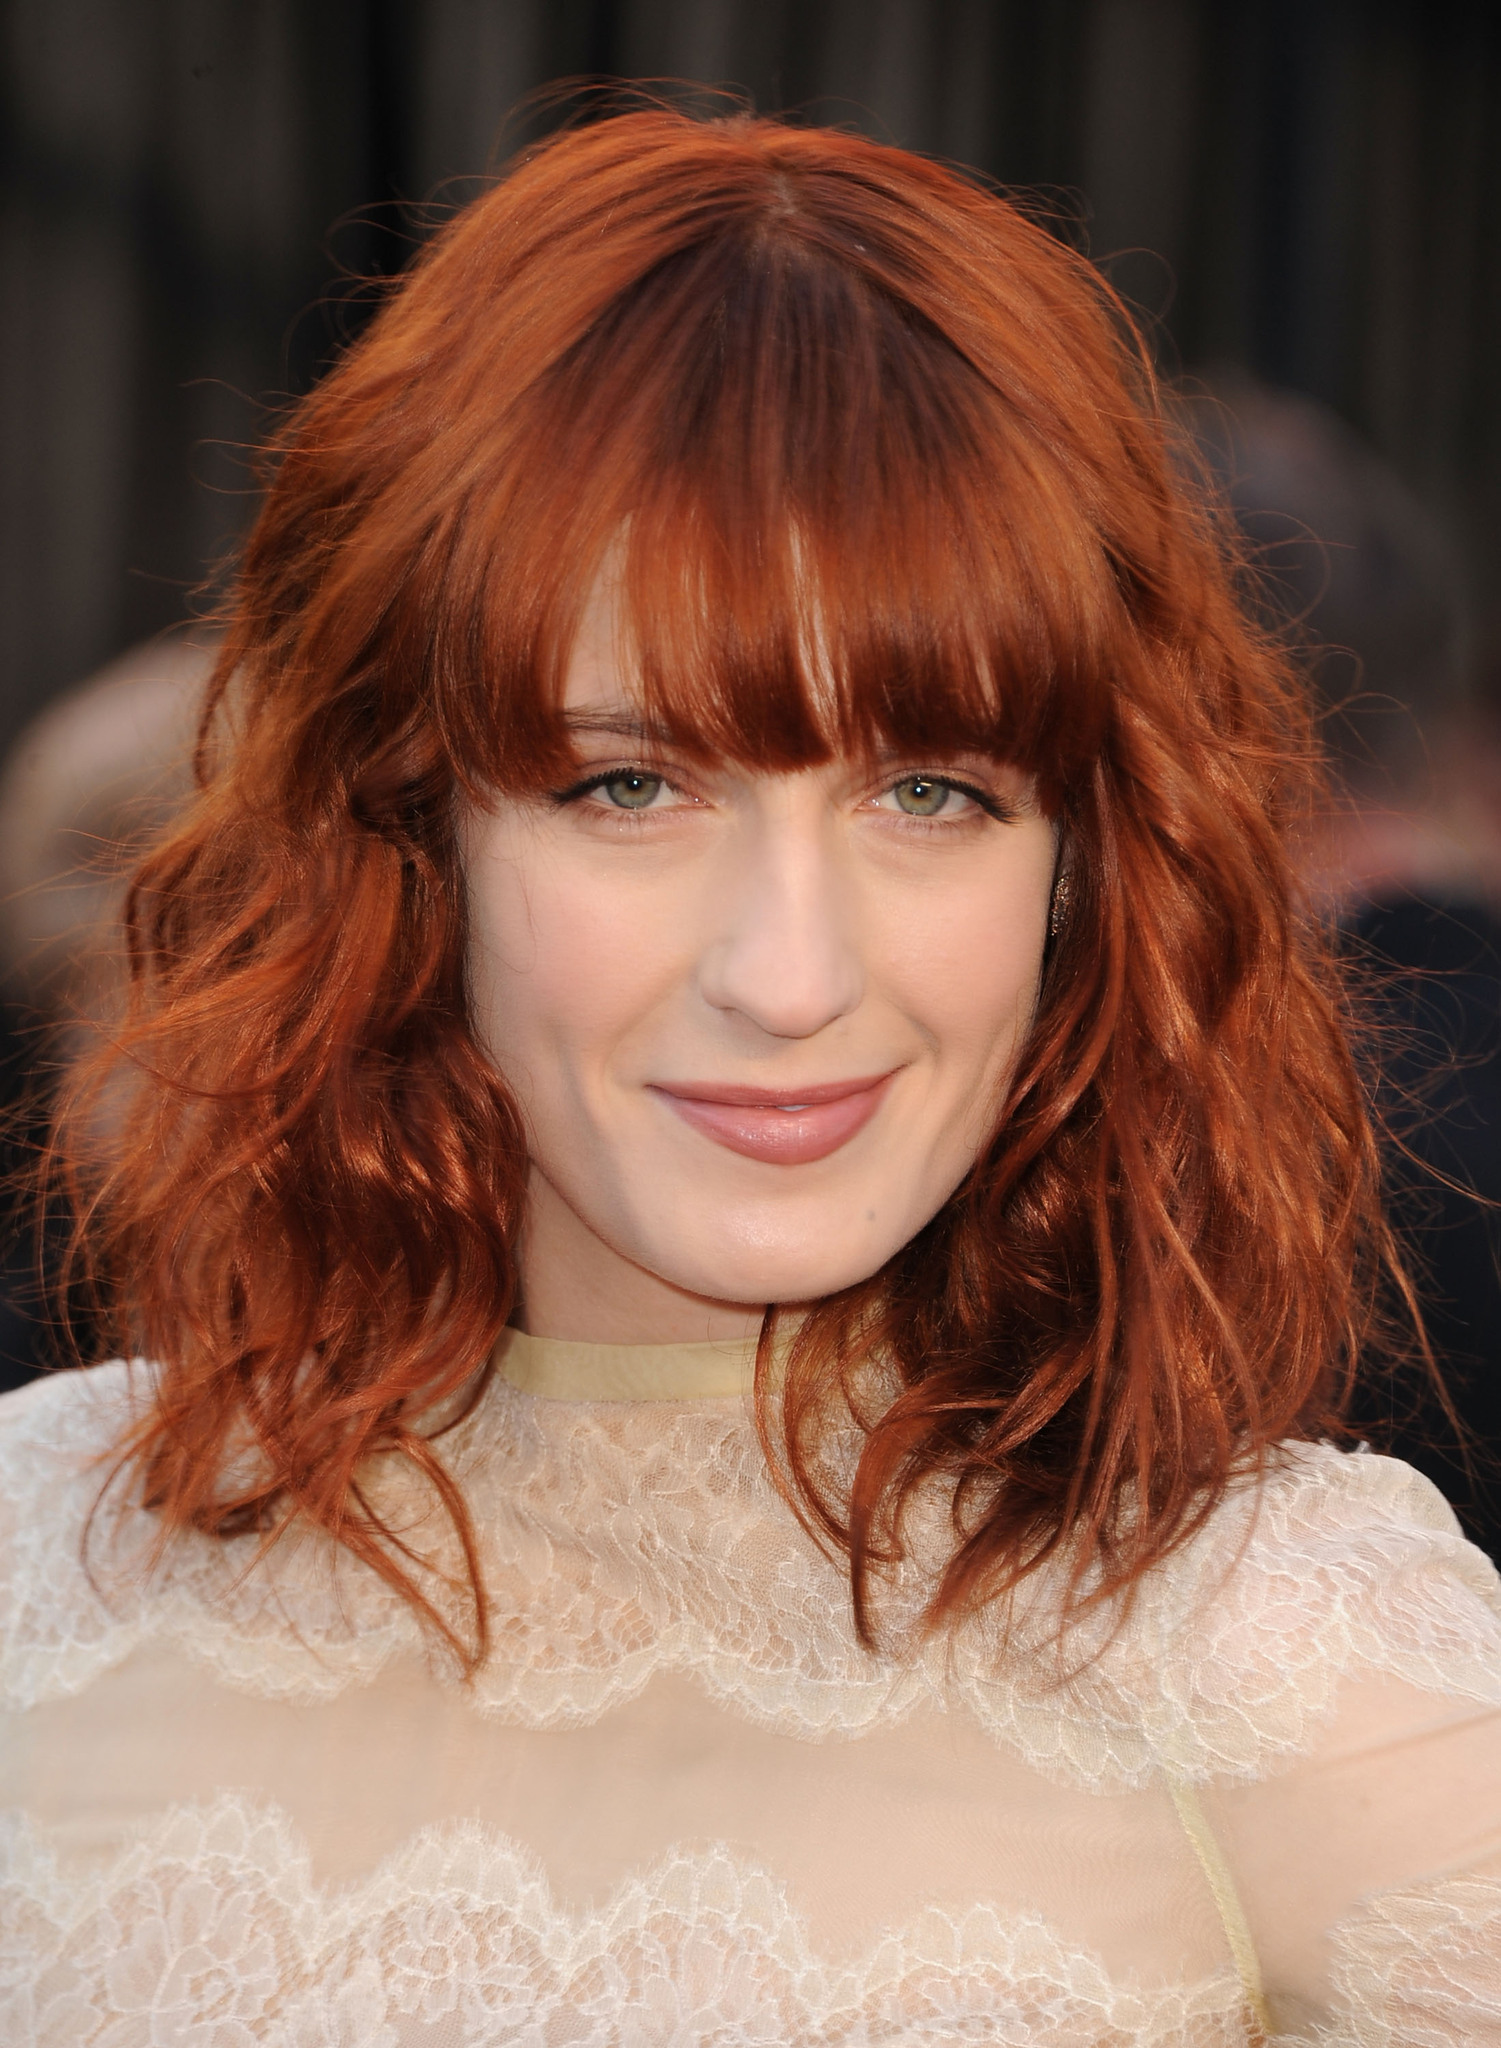 Florence Welch nudes (43 photos), foto Topless, YouTube, cleavage 2015